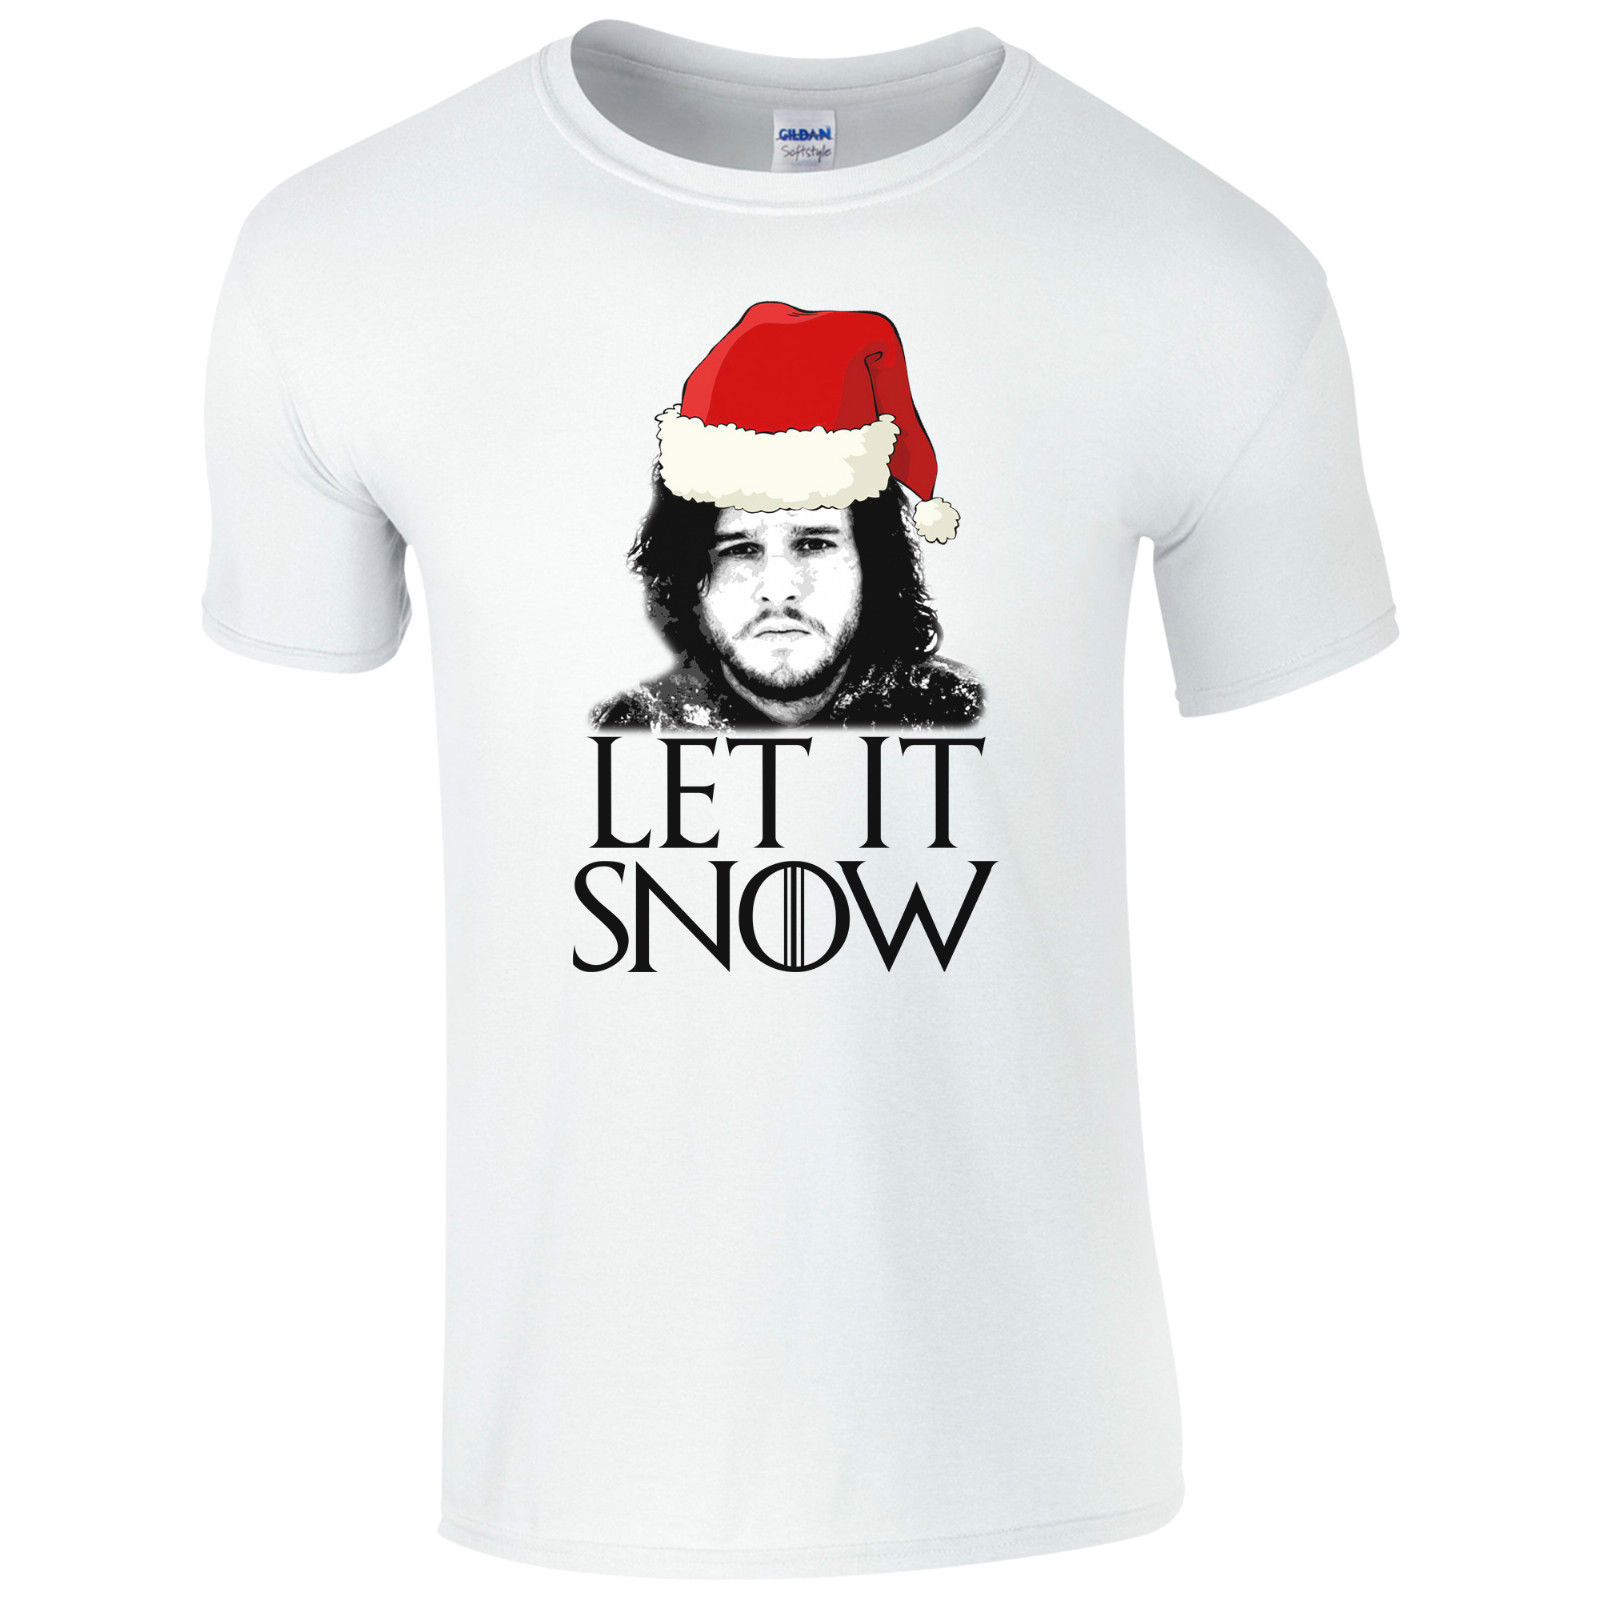 Let It Snow T-shirt 6QXMfIu1